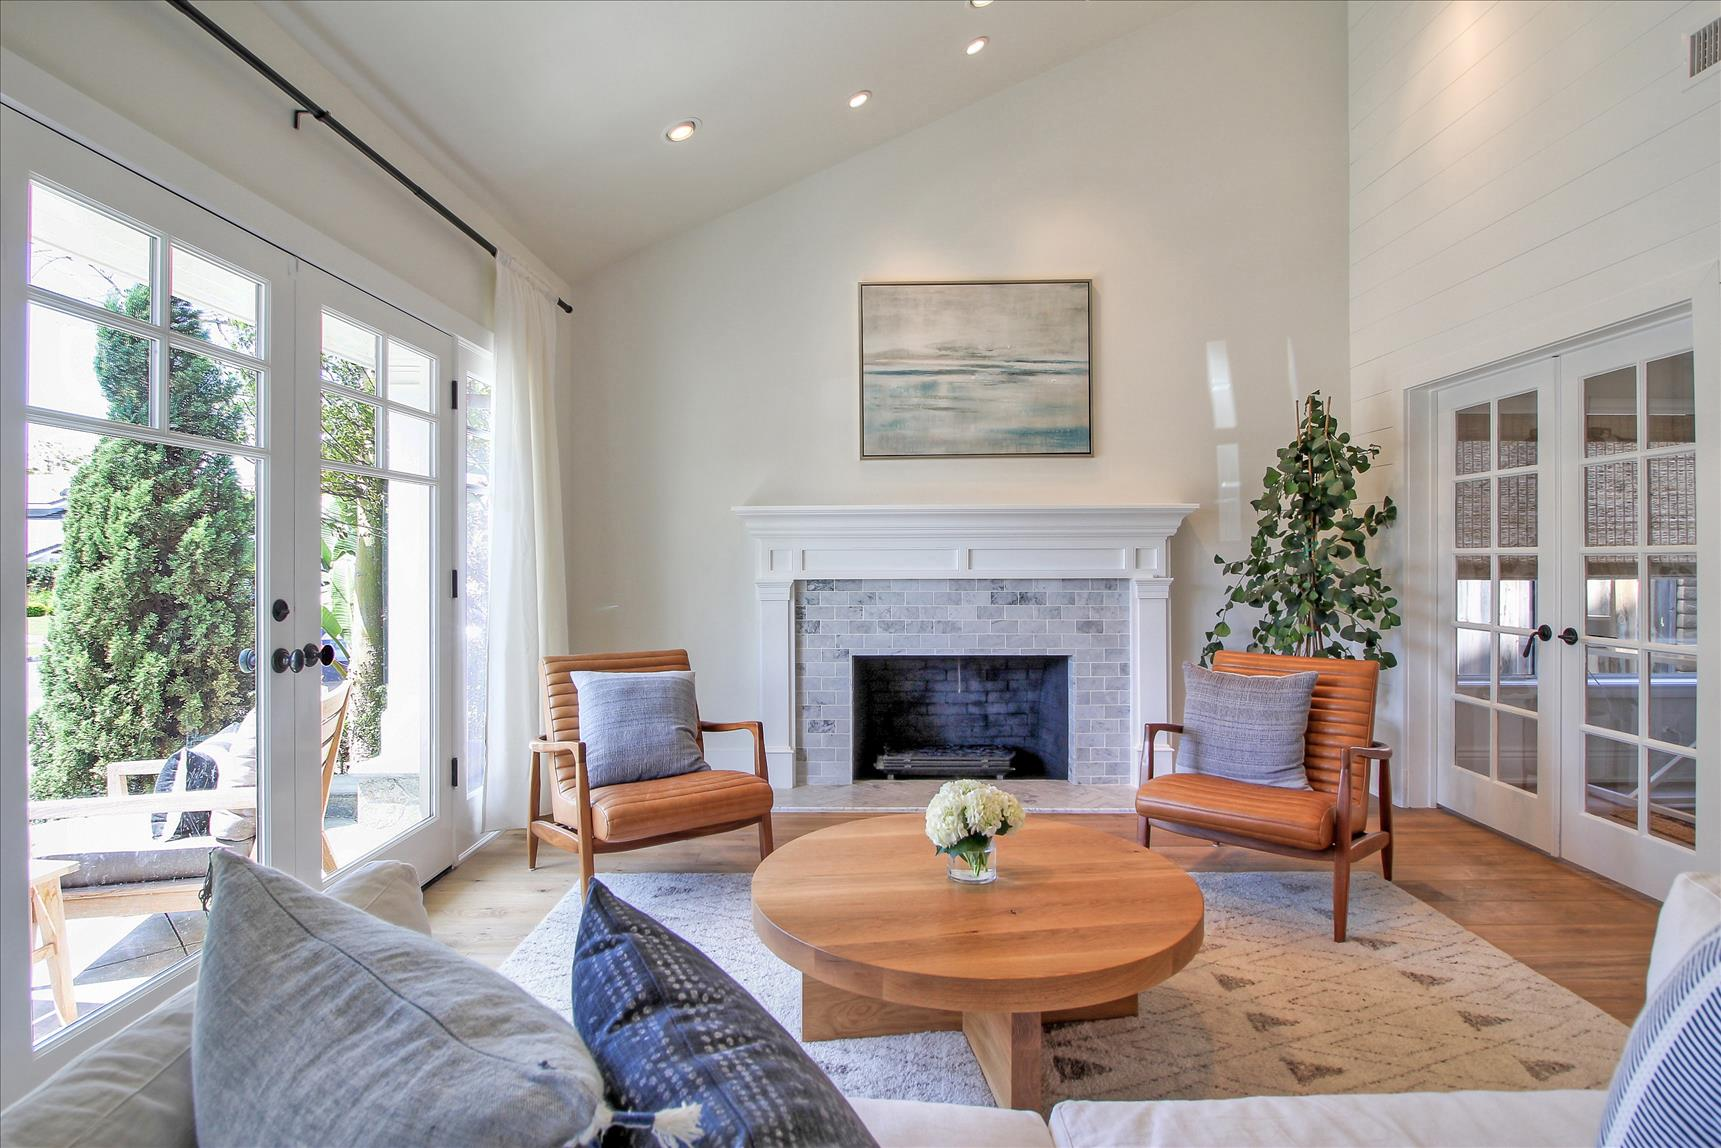 1836 Port Barmouth Pl, Newport Beach, CA  9266010.jpg